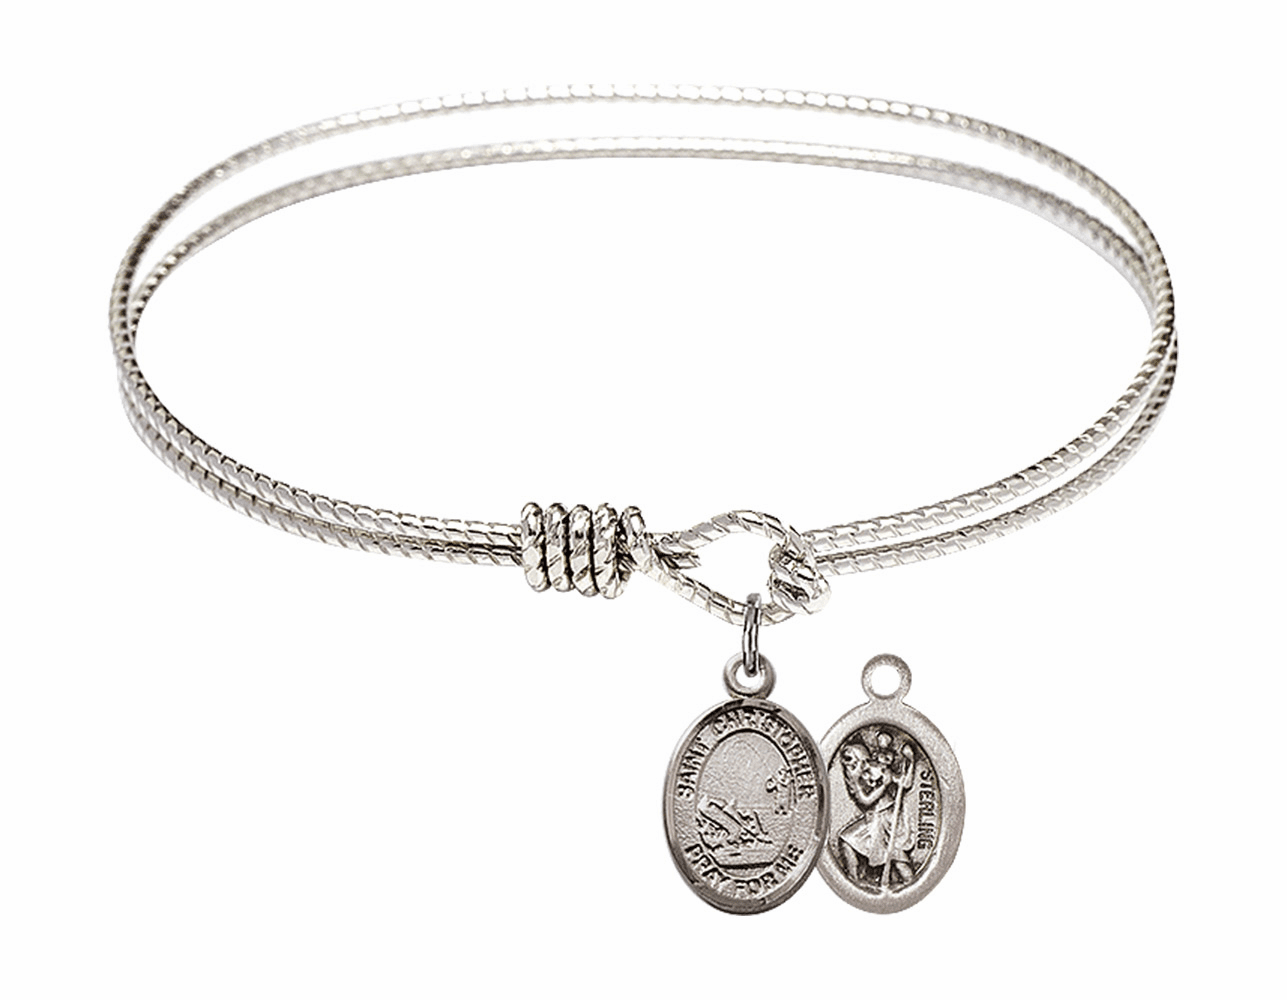 Twist Round Eye Hook St Christopher Fishing Bangle Charm Bracelet by Bliss